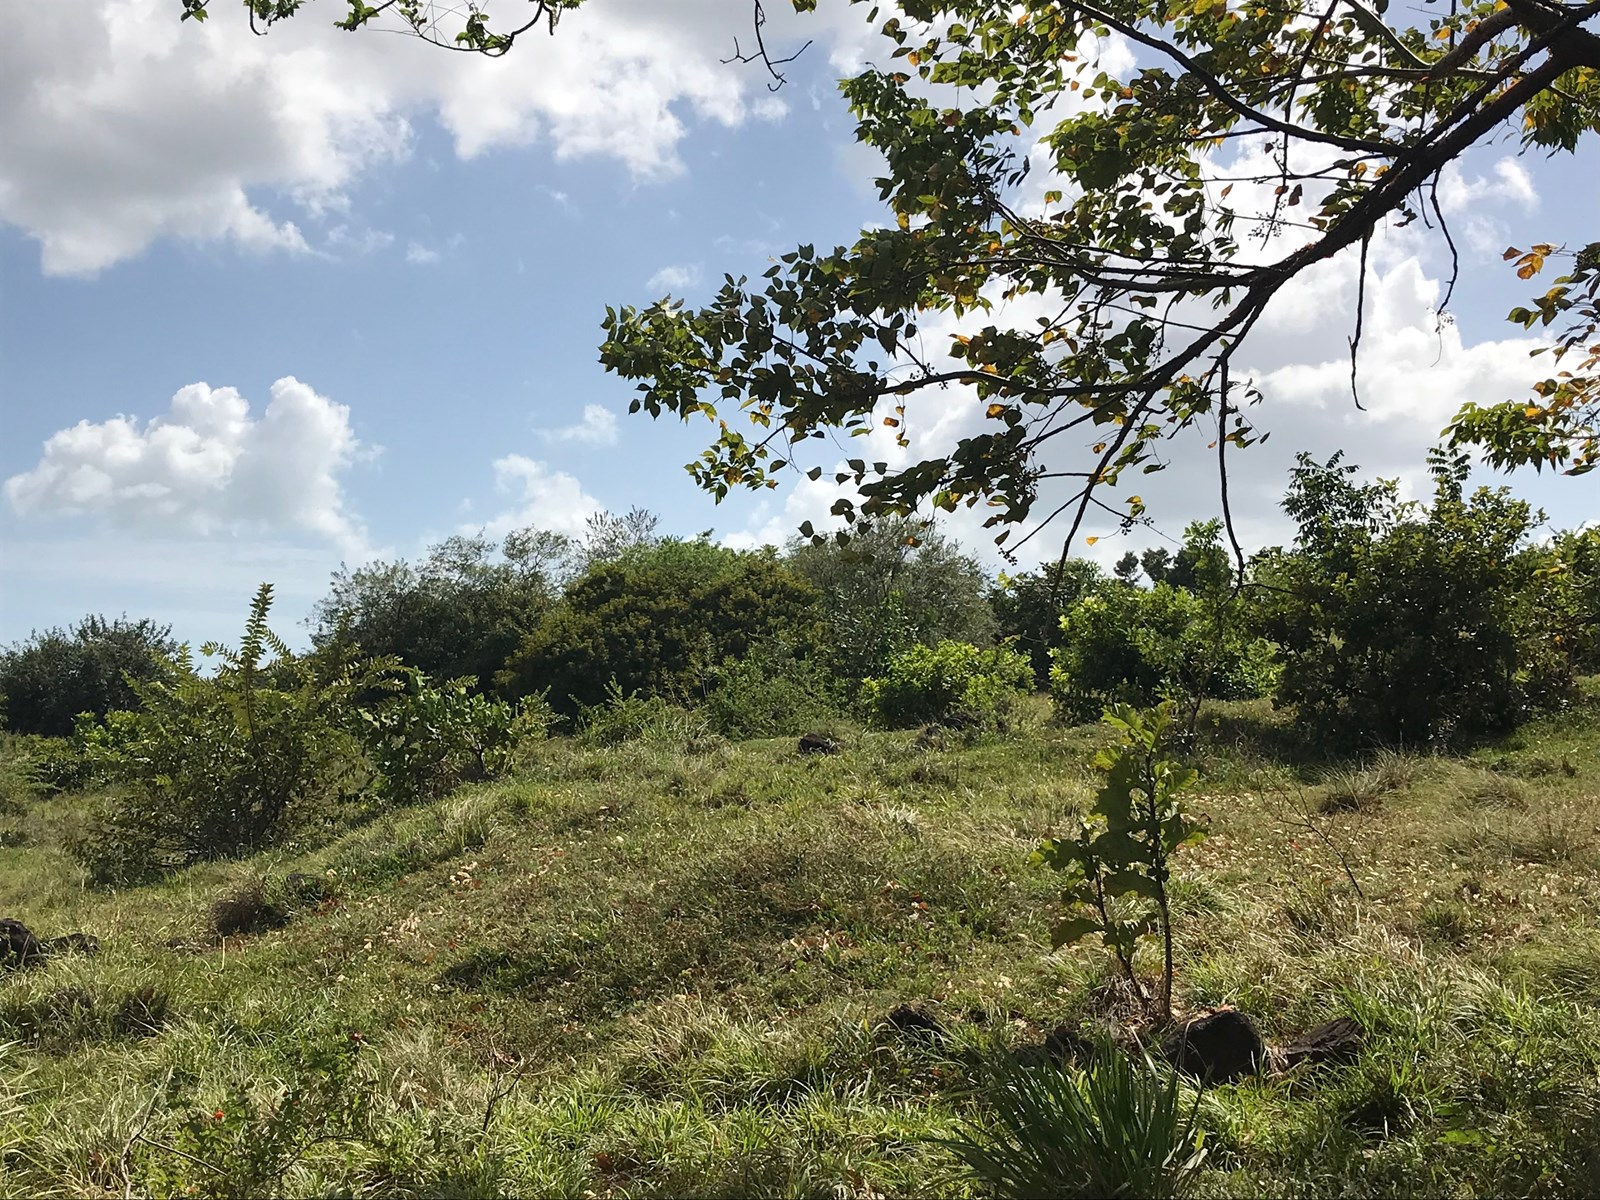 Lot in Punta Chame, only 90 meters from Carretera Panamerica